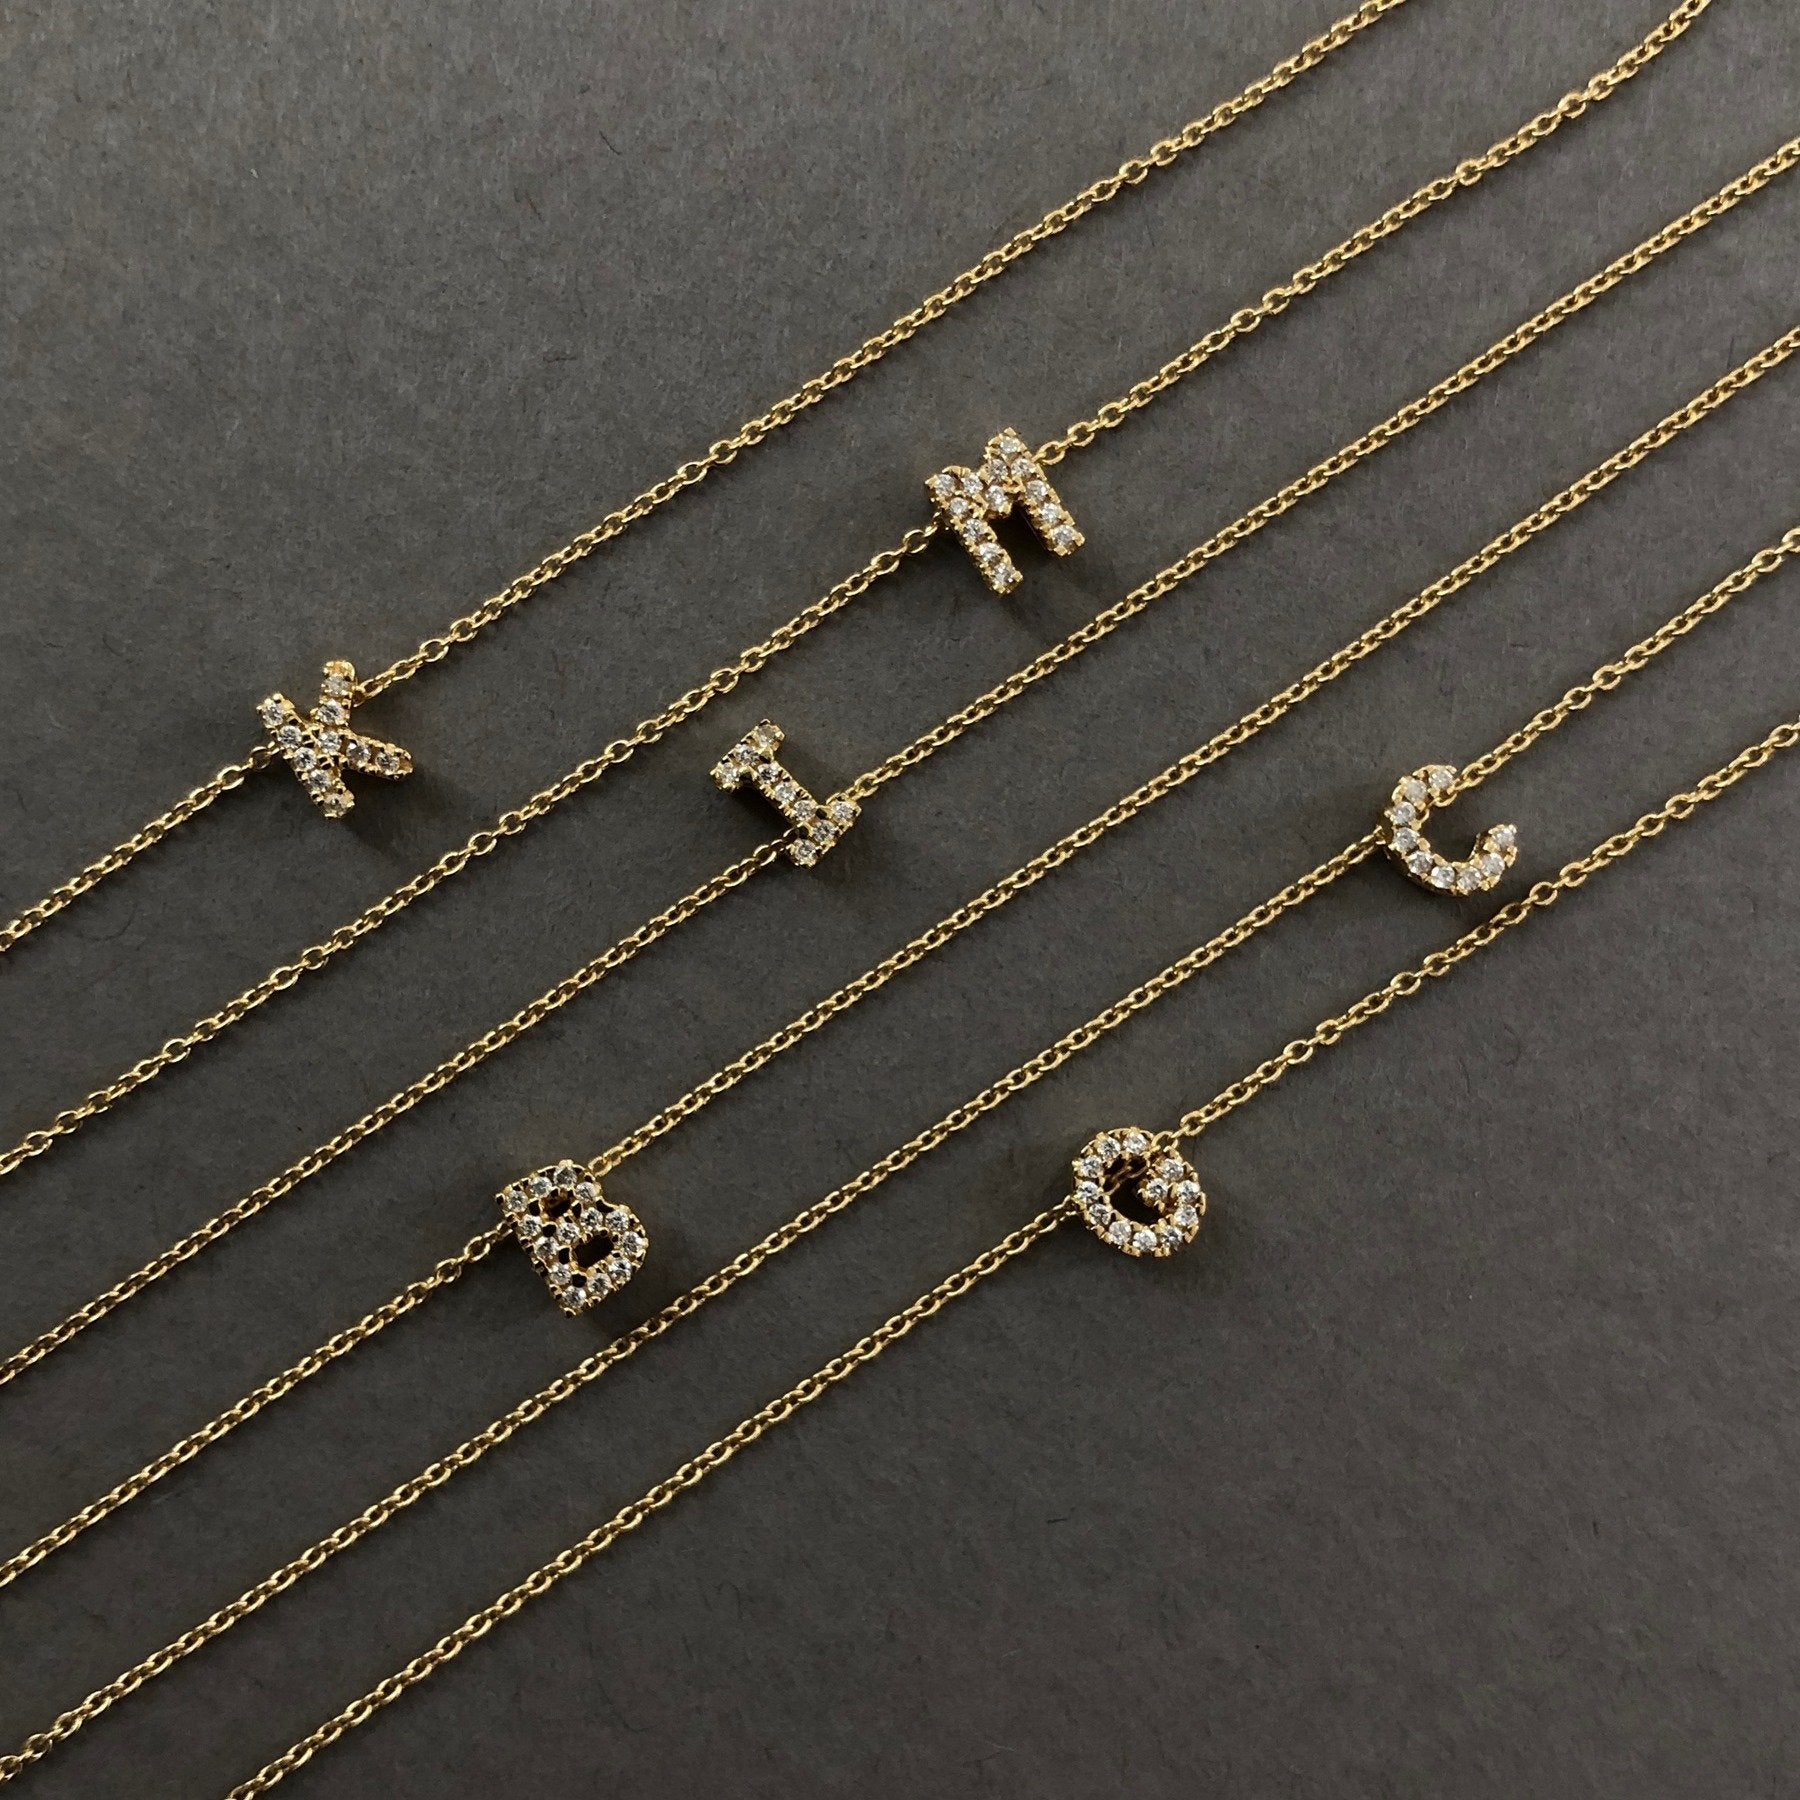 Shine, 18-karat Yellow Gold Necklace with Diamond Pendant - B